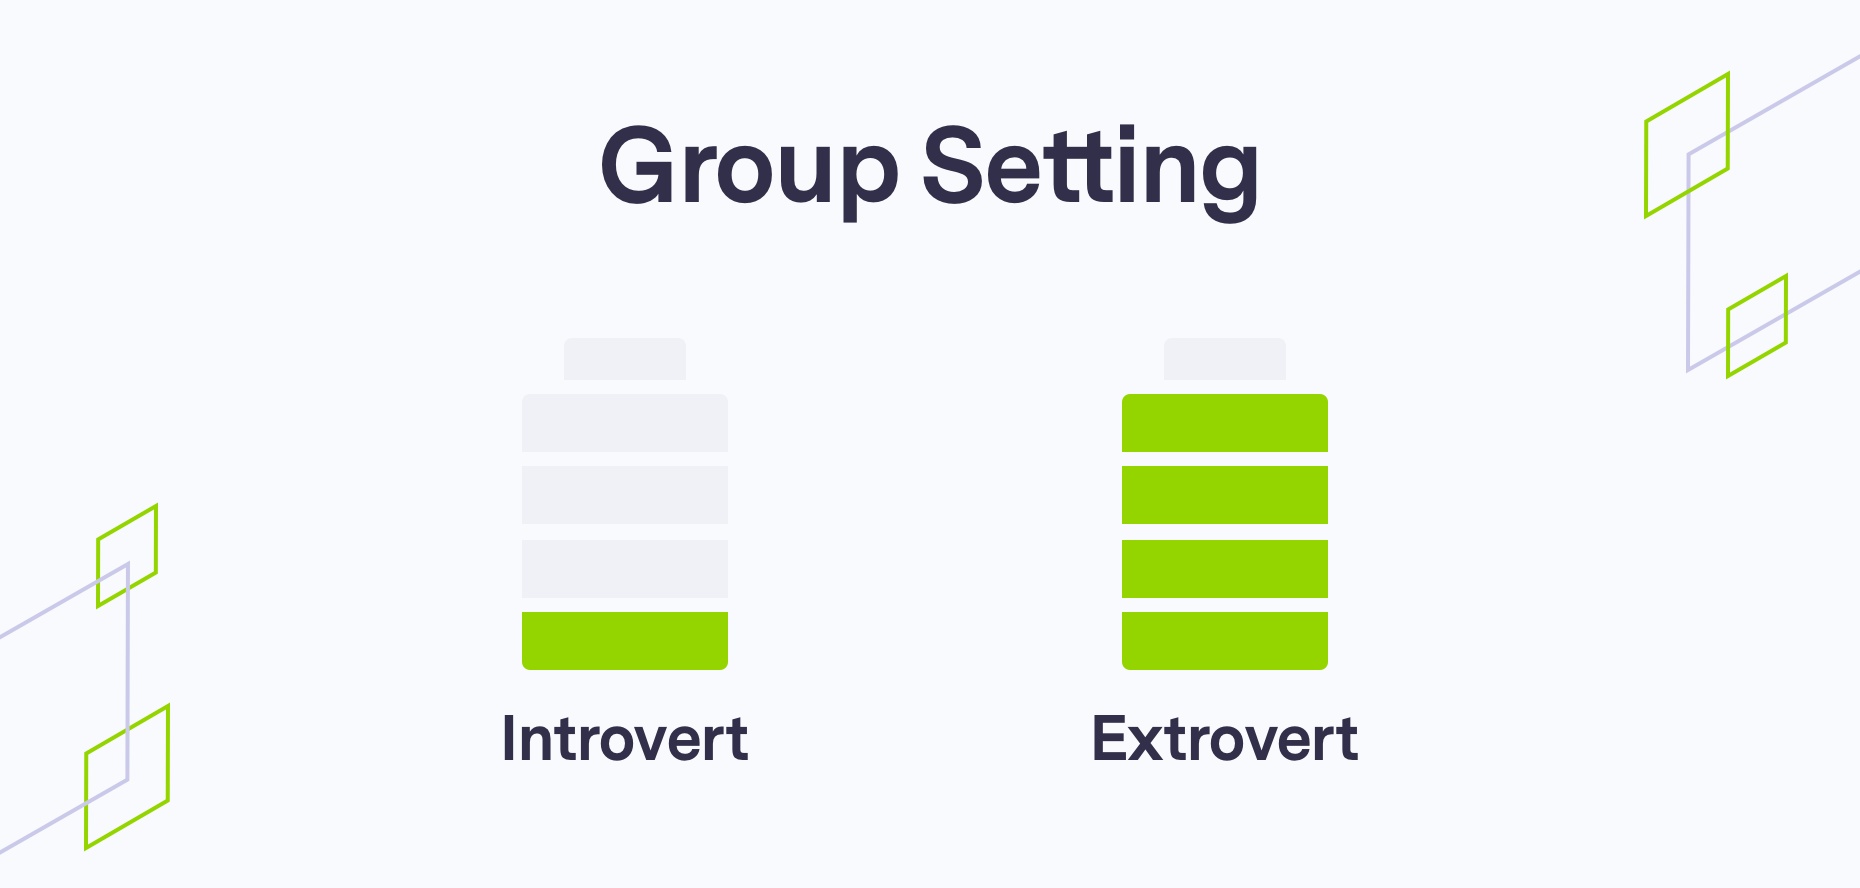 Graphic to show introverts and extroverts in group settings